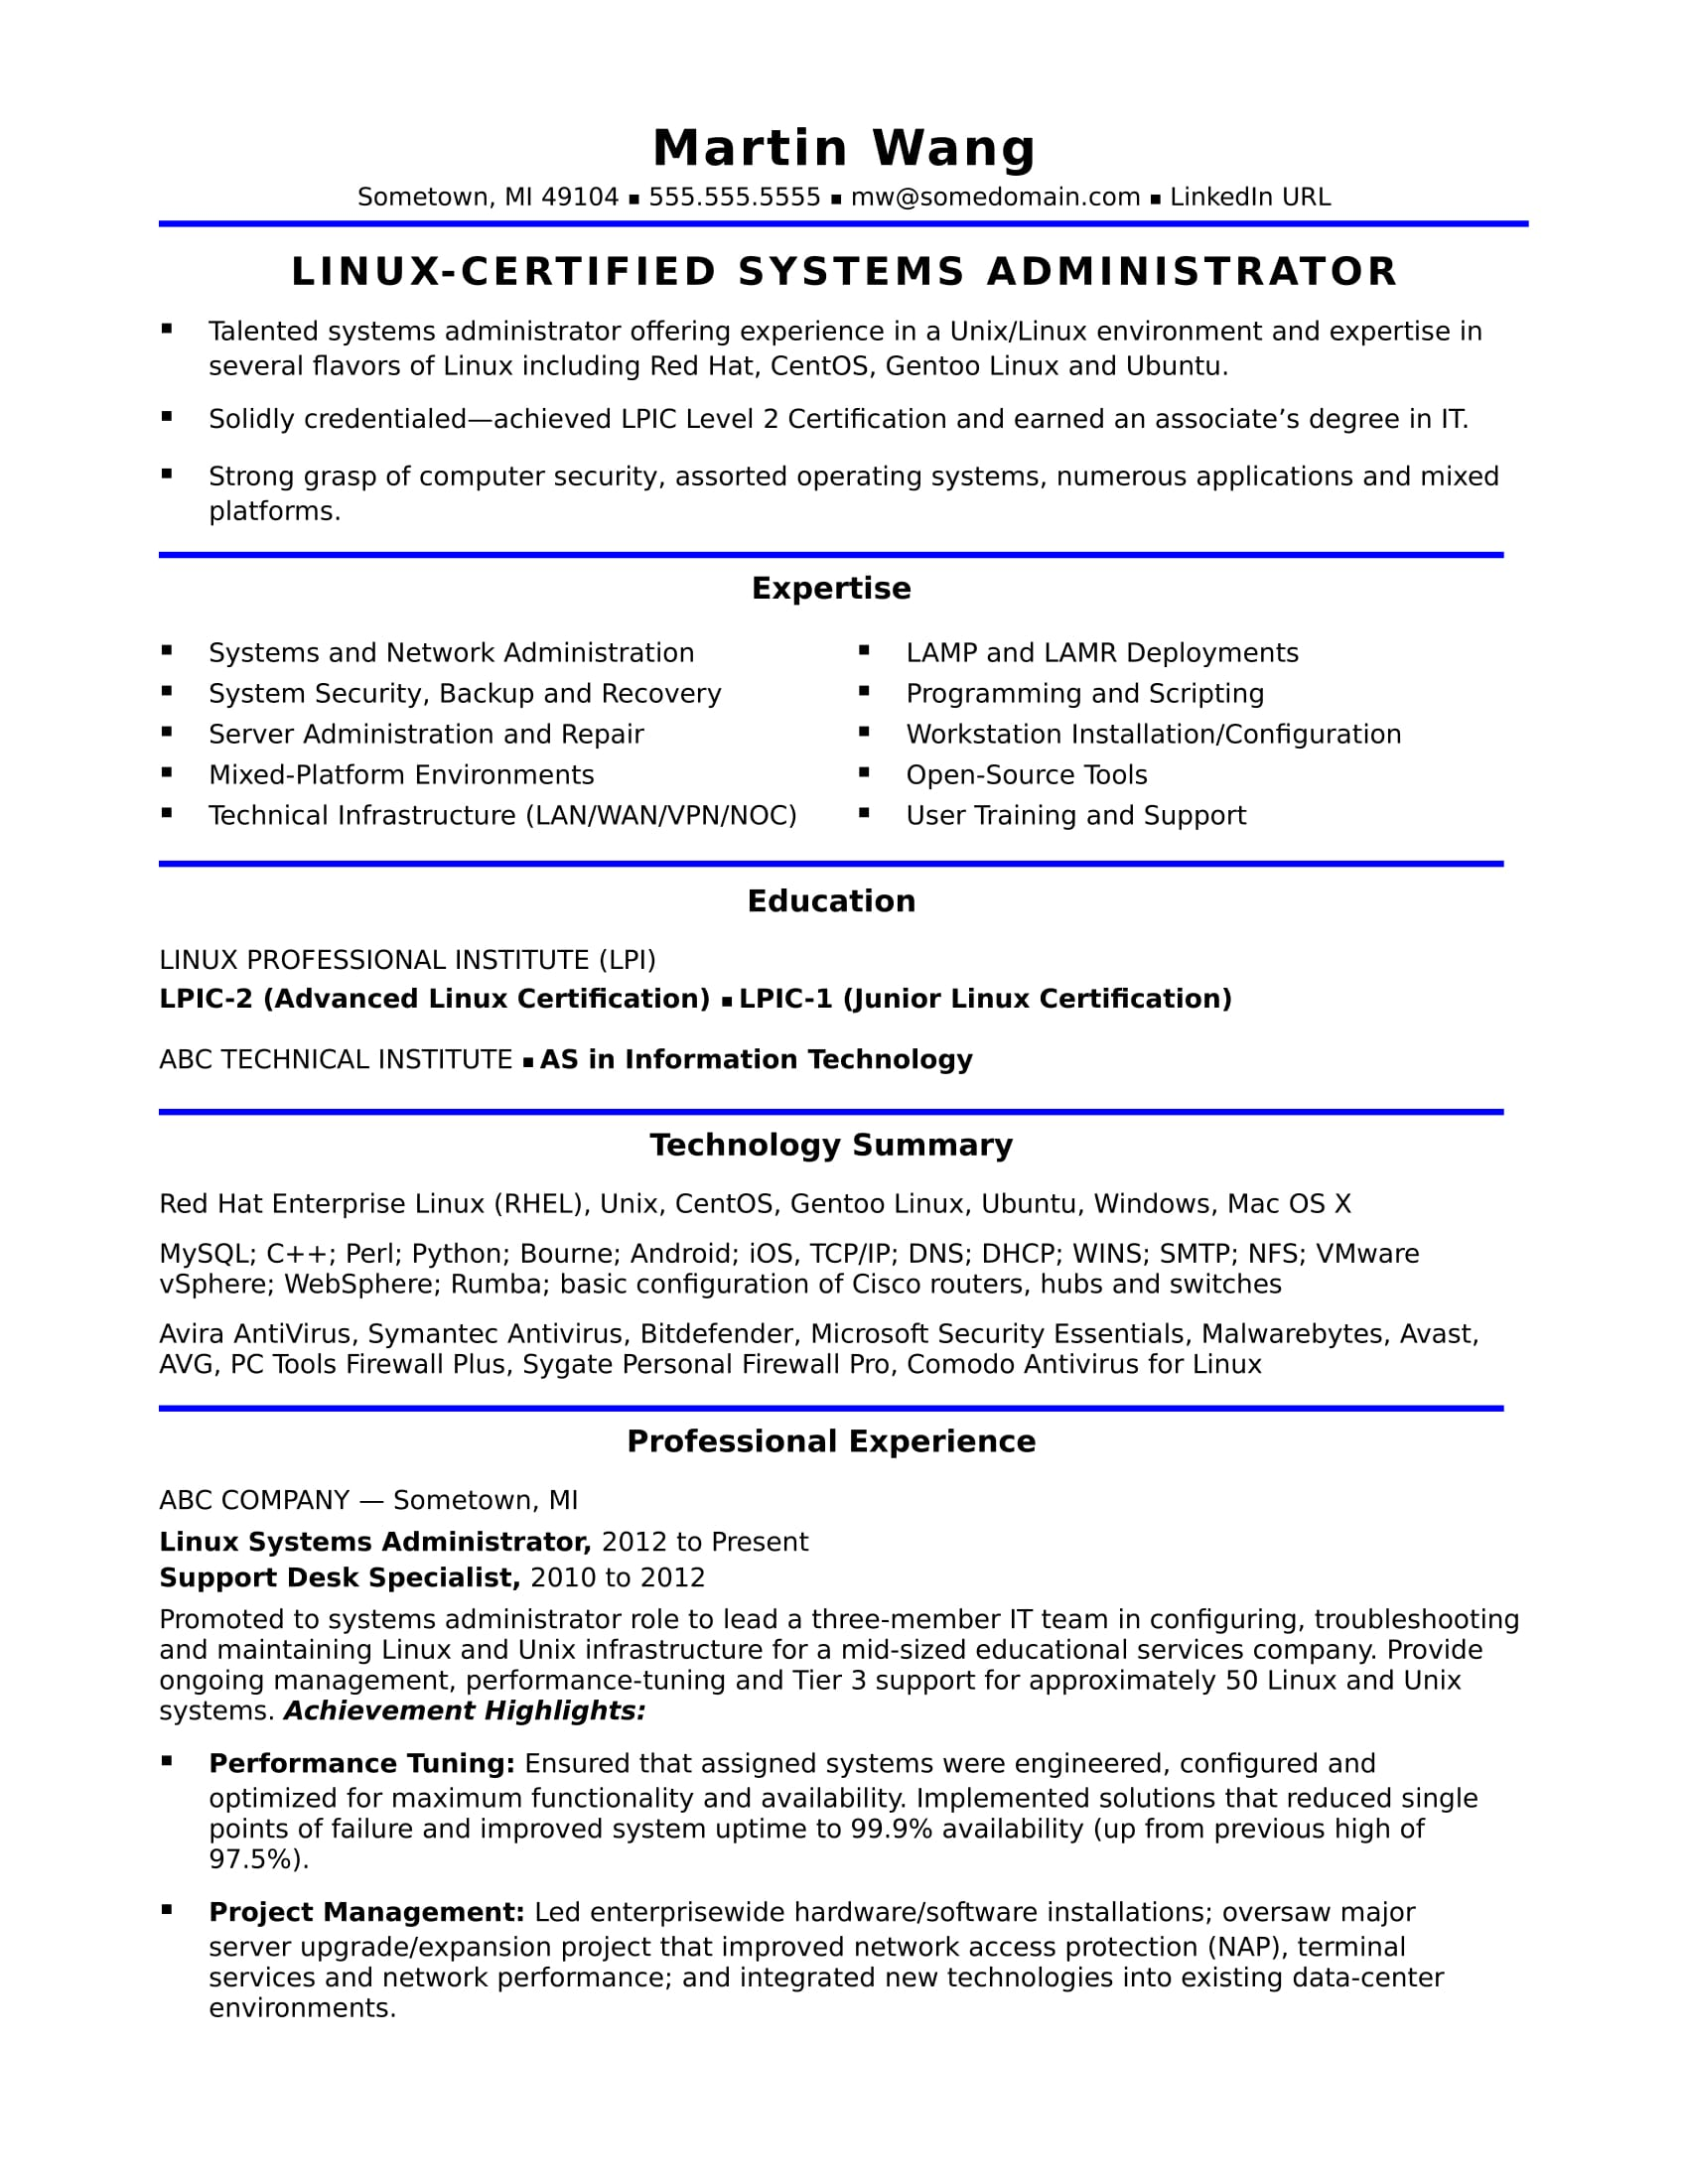 sample resume for midlevel systems administrator monster network template picu nurse Resume Network Administrator Resume Template